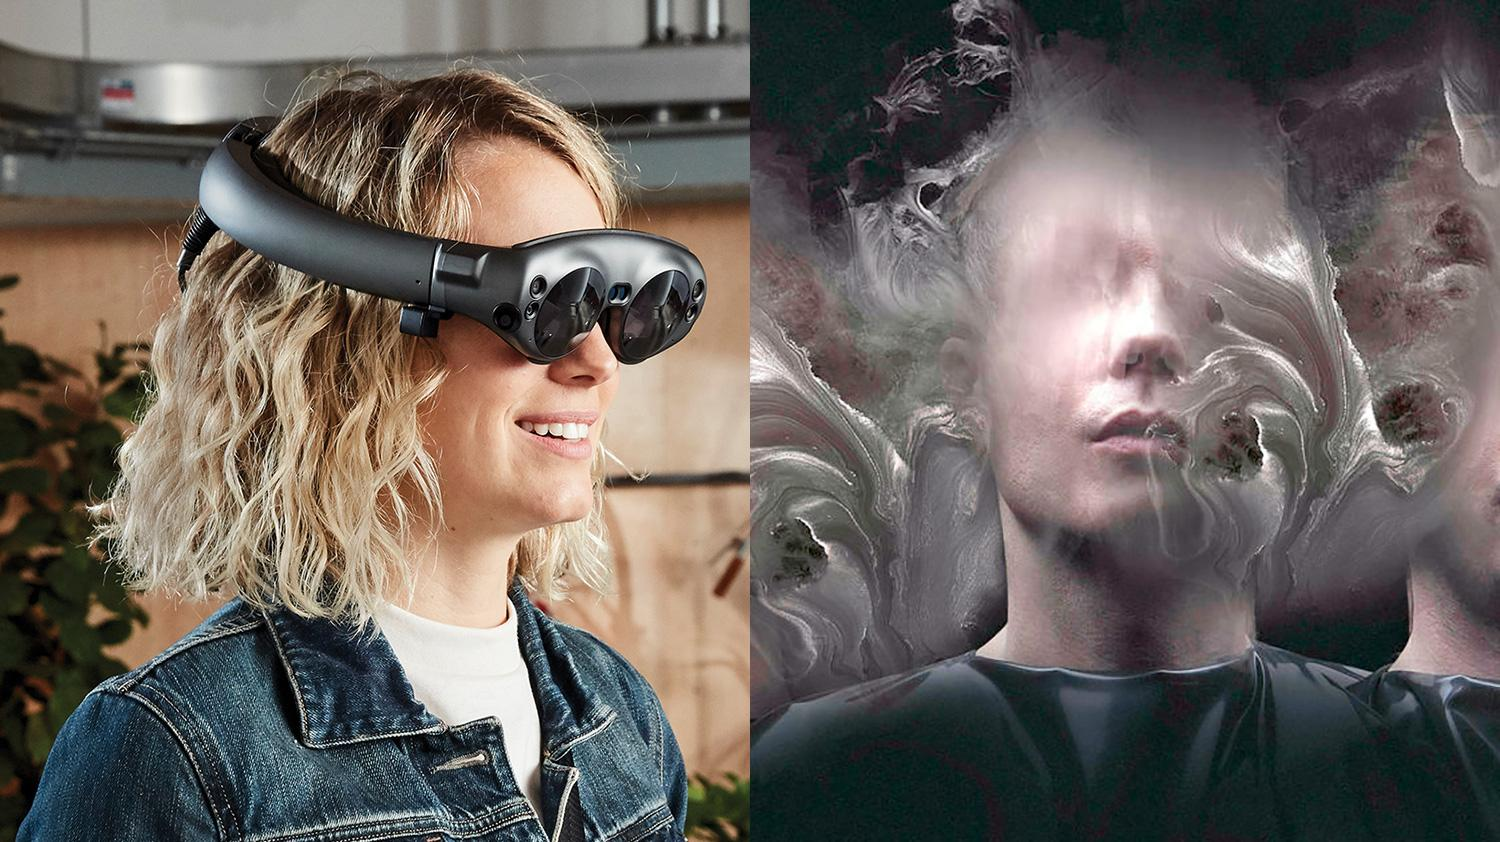 Music meets AR in this app collaboration between Sigur Rós and Magic Leap